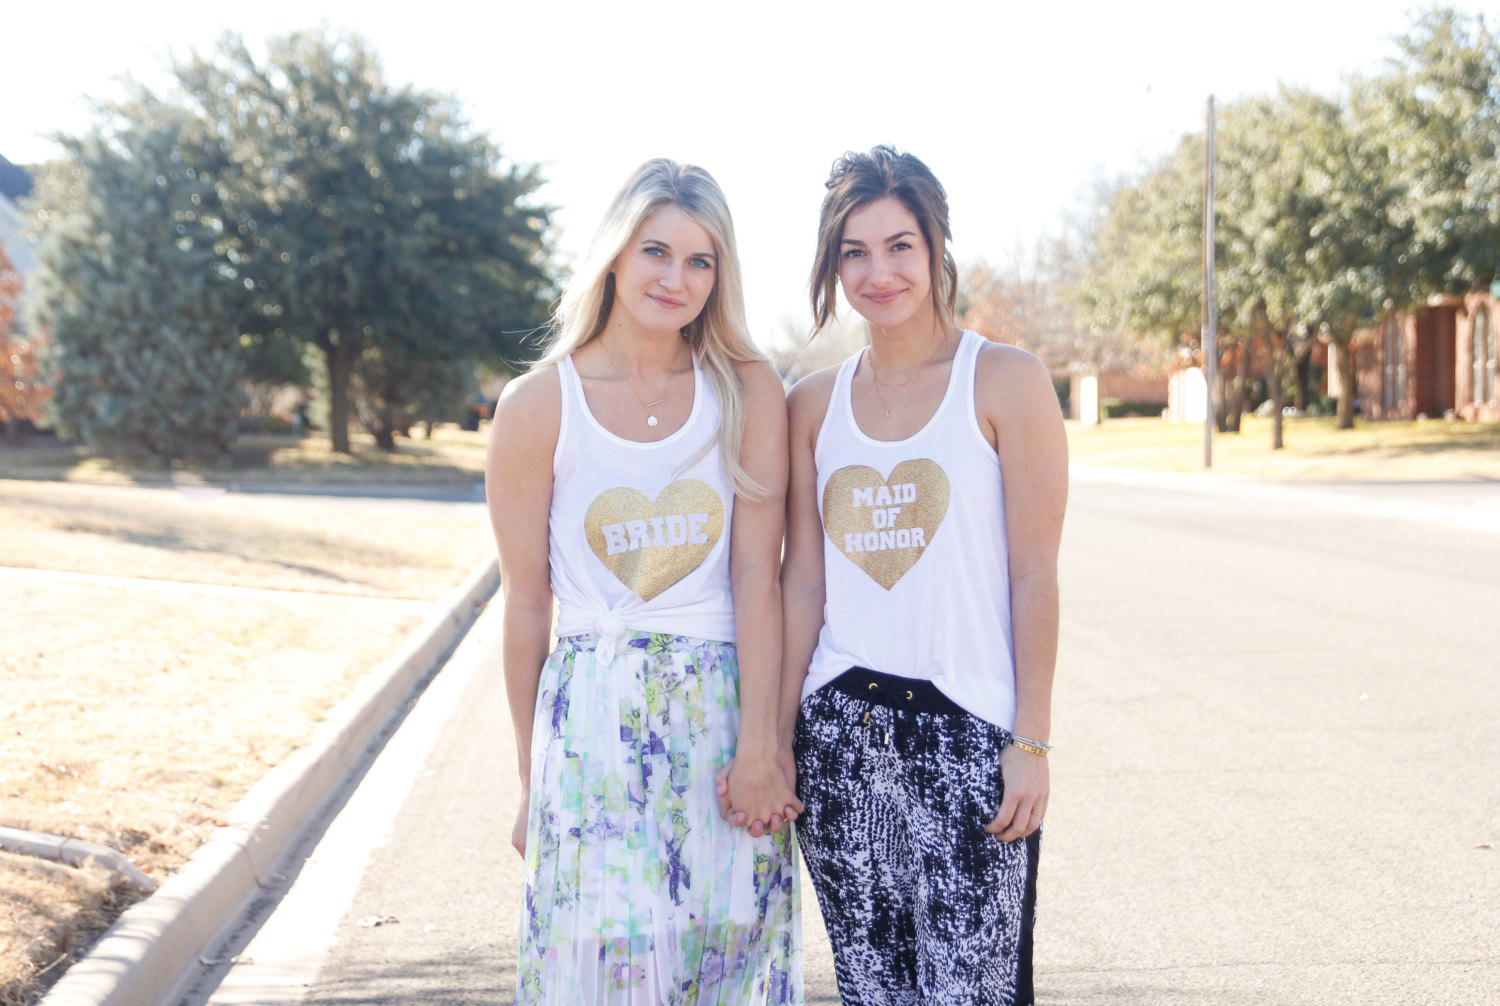 flowy bridal party tank tops